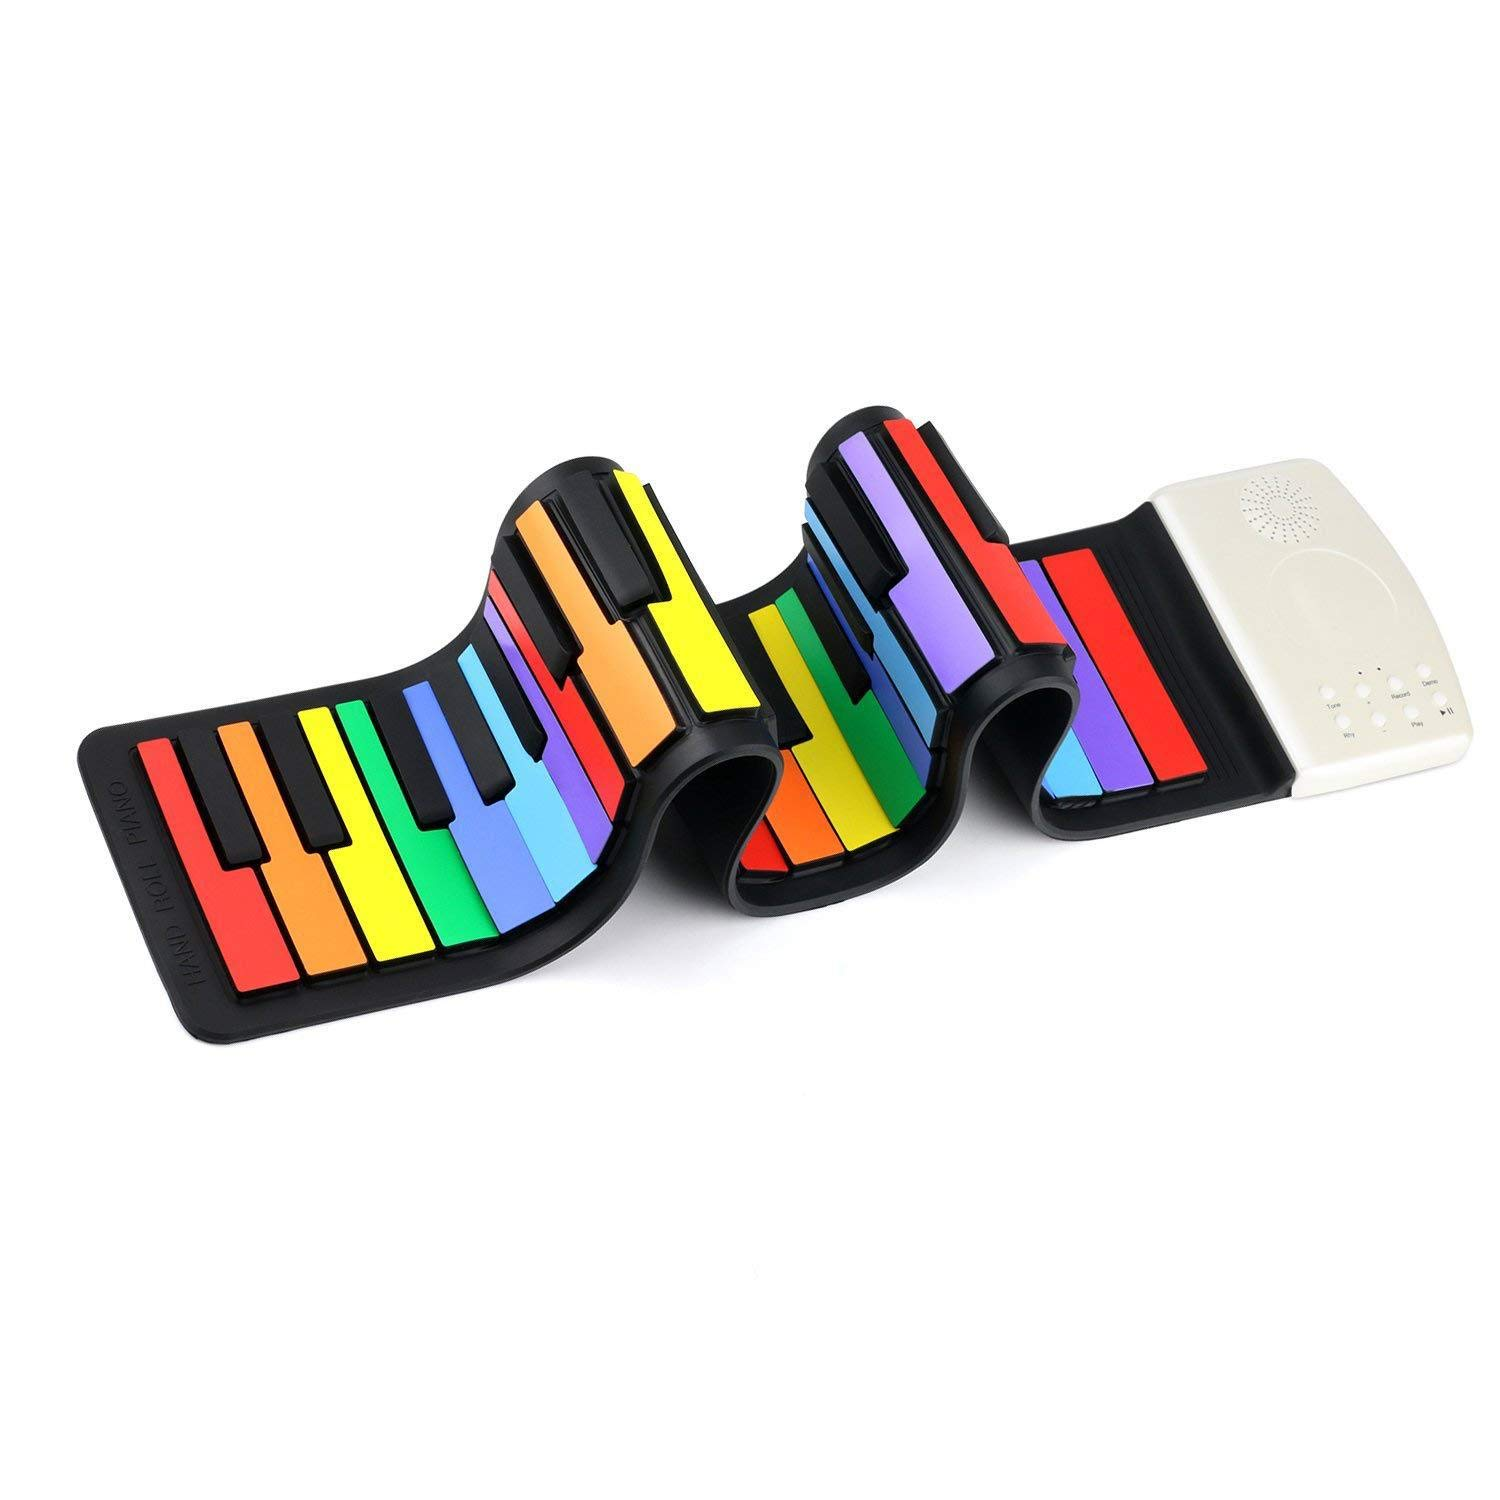 DSYYF Multifunctional 49 Keys Roll Up Rainbow Piano Portable Electronic Hand Roll Piano Environmental Silicone Piano Keyboard for Beginners by DSYYF